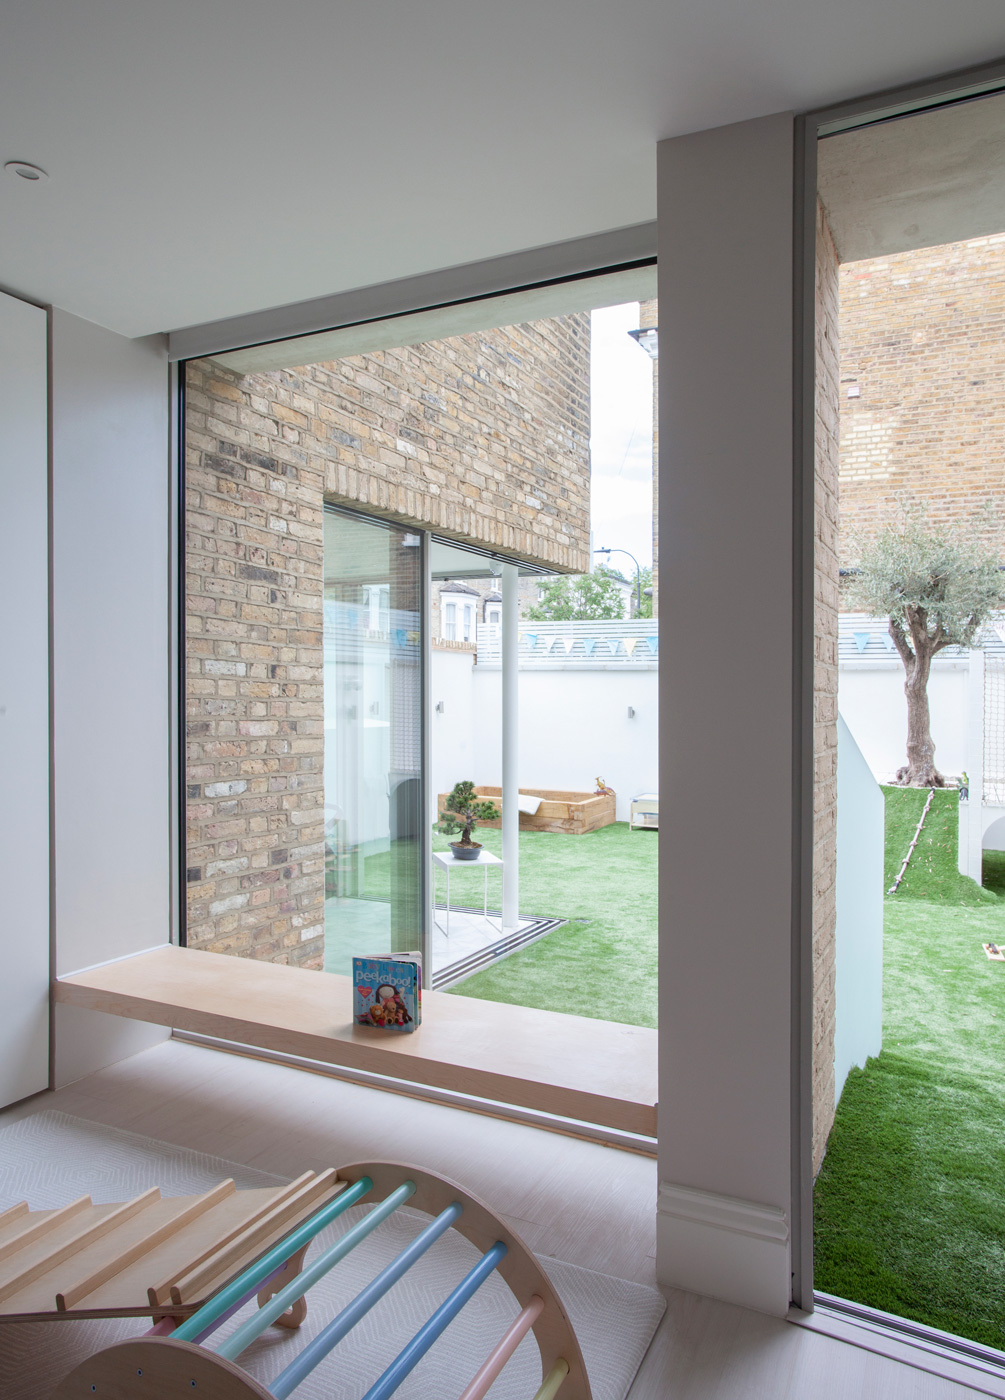 Refurbishment and extension of a 1930's house in South London, to convert an existing side garage to create a new open plan kitchen, dining and living space.